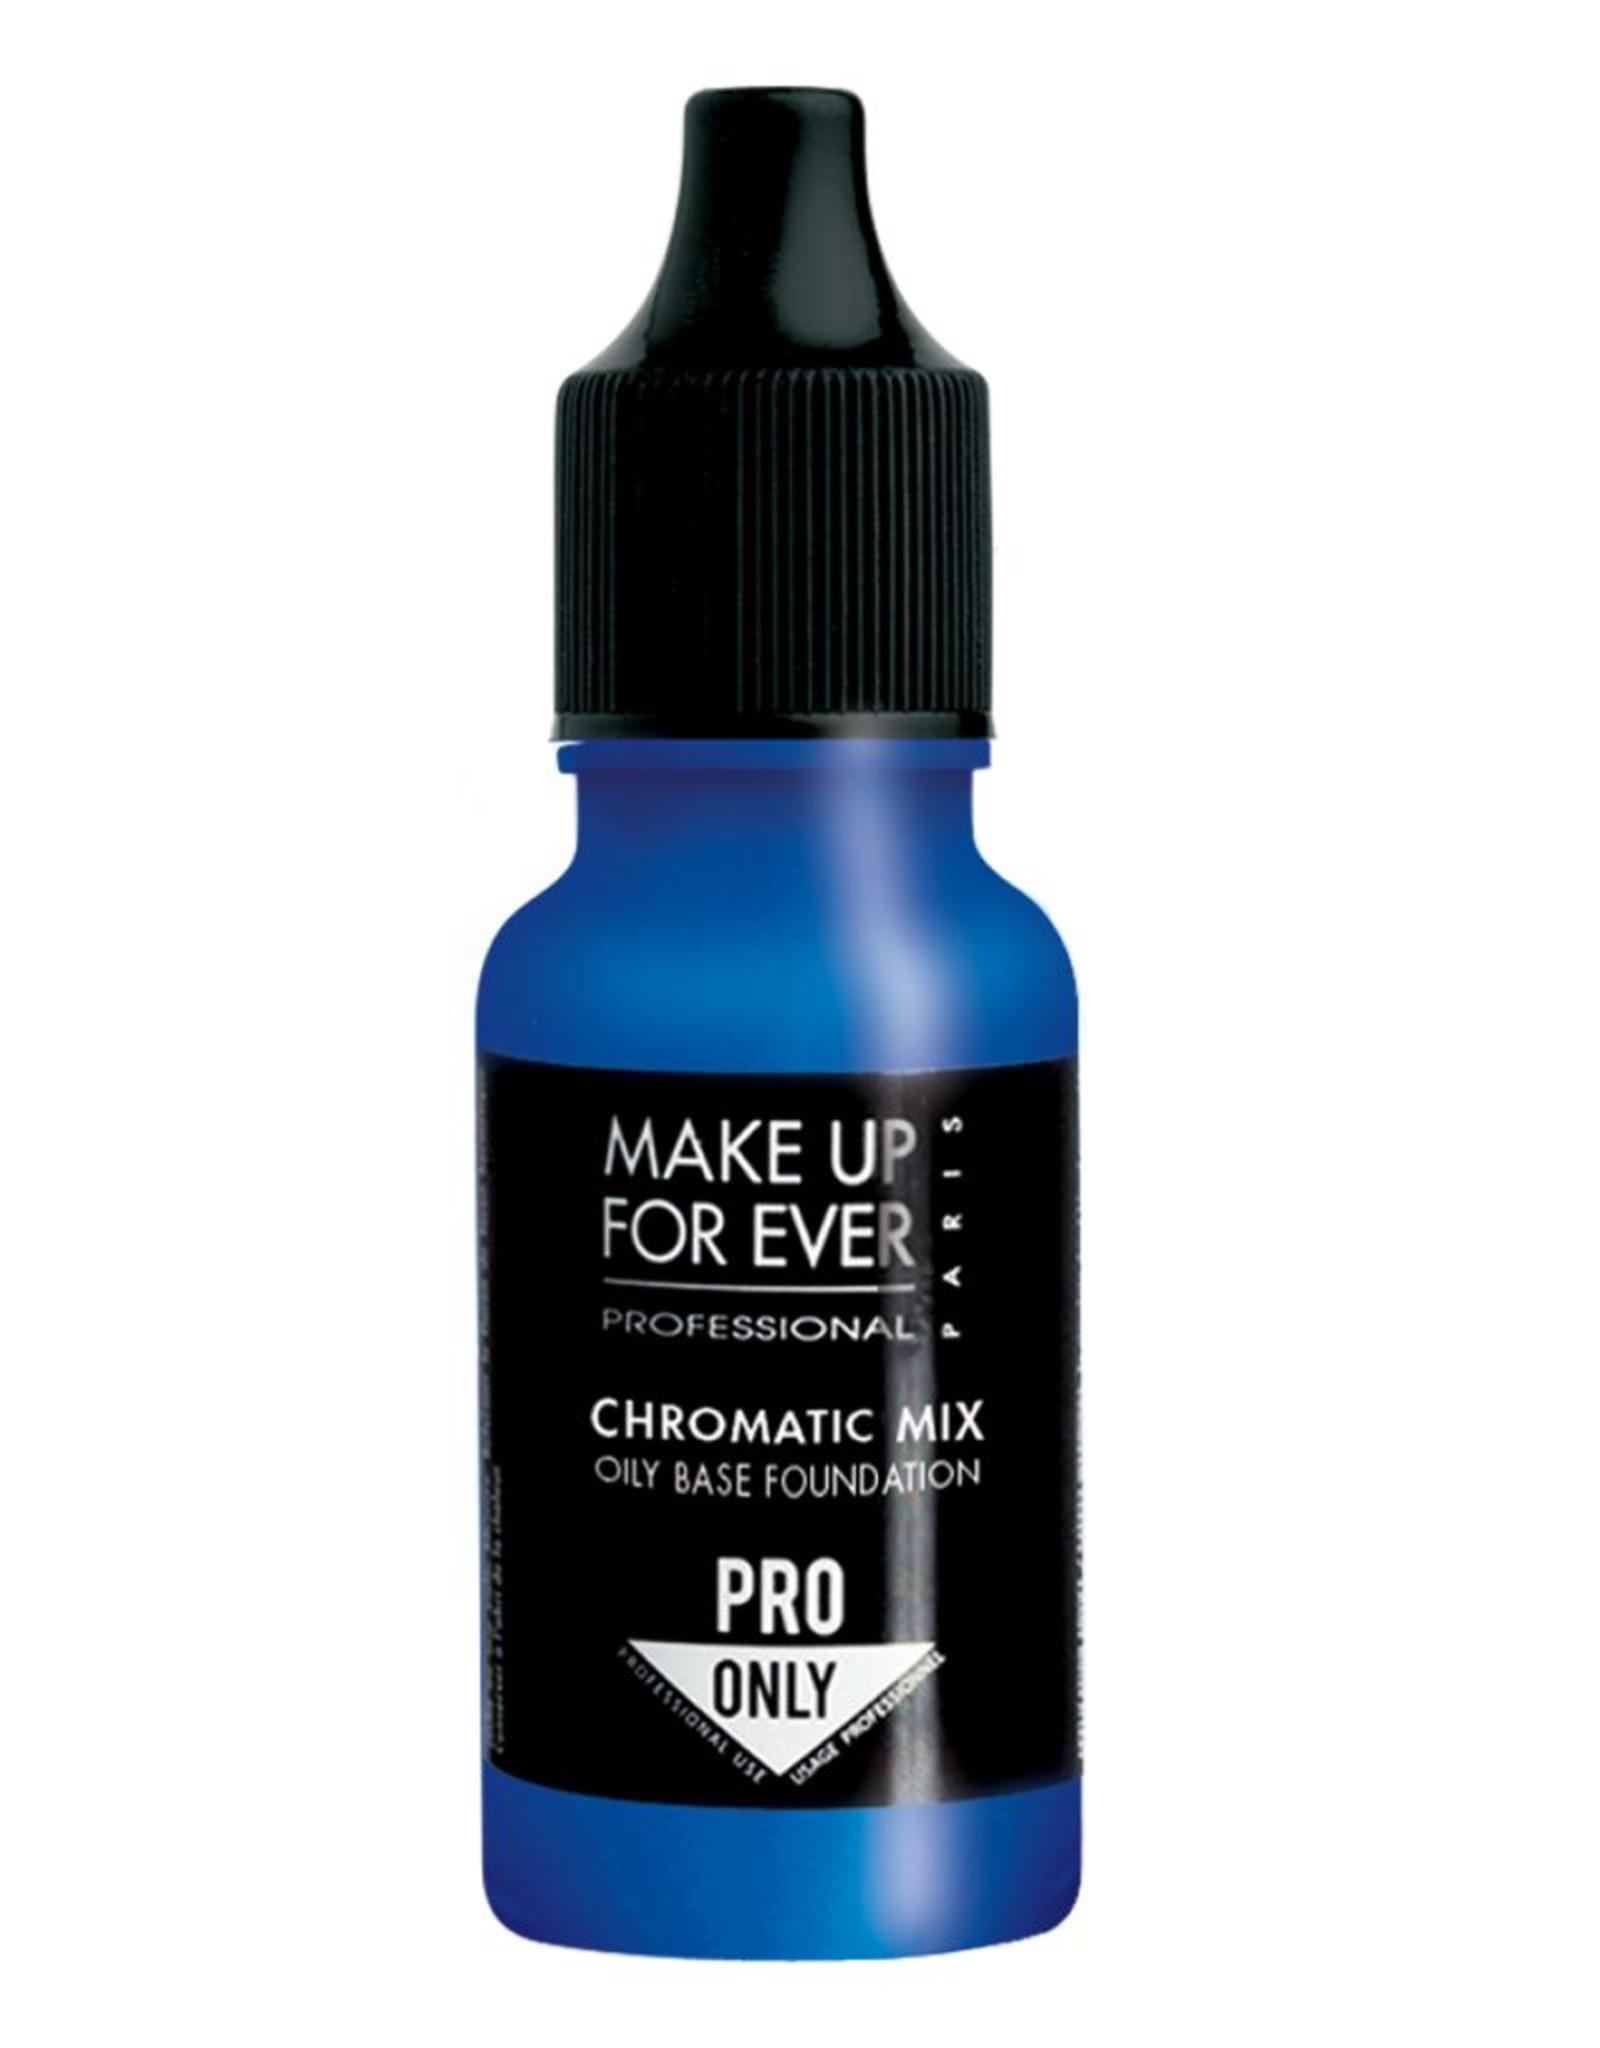 MUFE CHROMATIC MIX 13ML (Base Oil) #13 Bleu / Blue